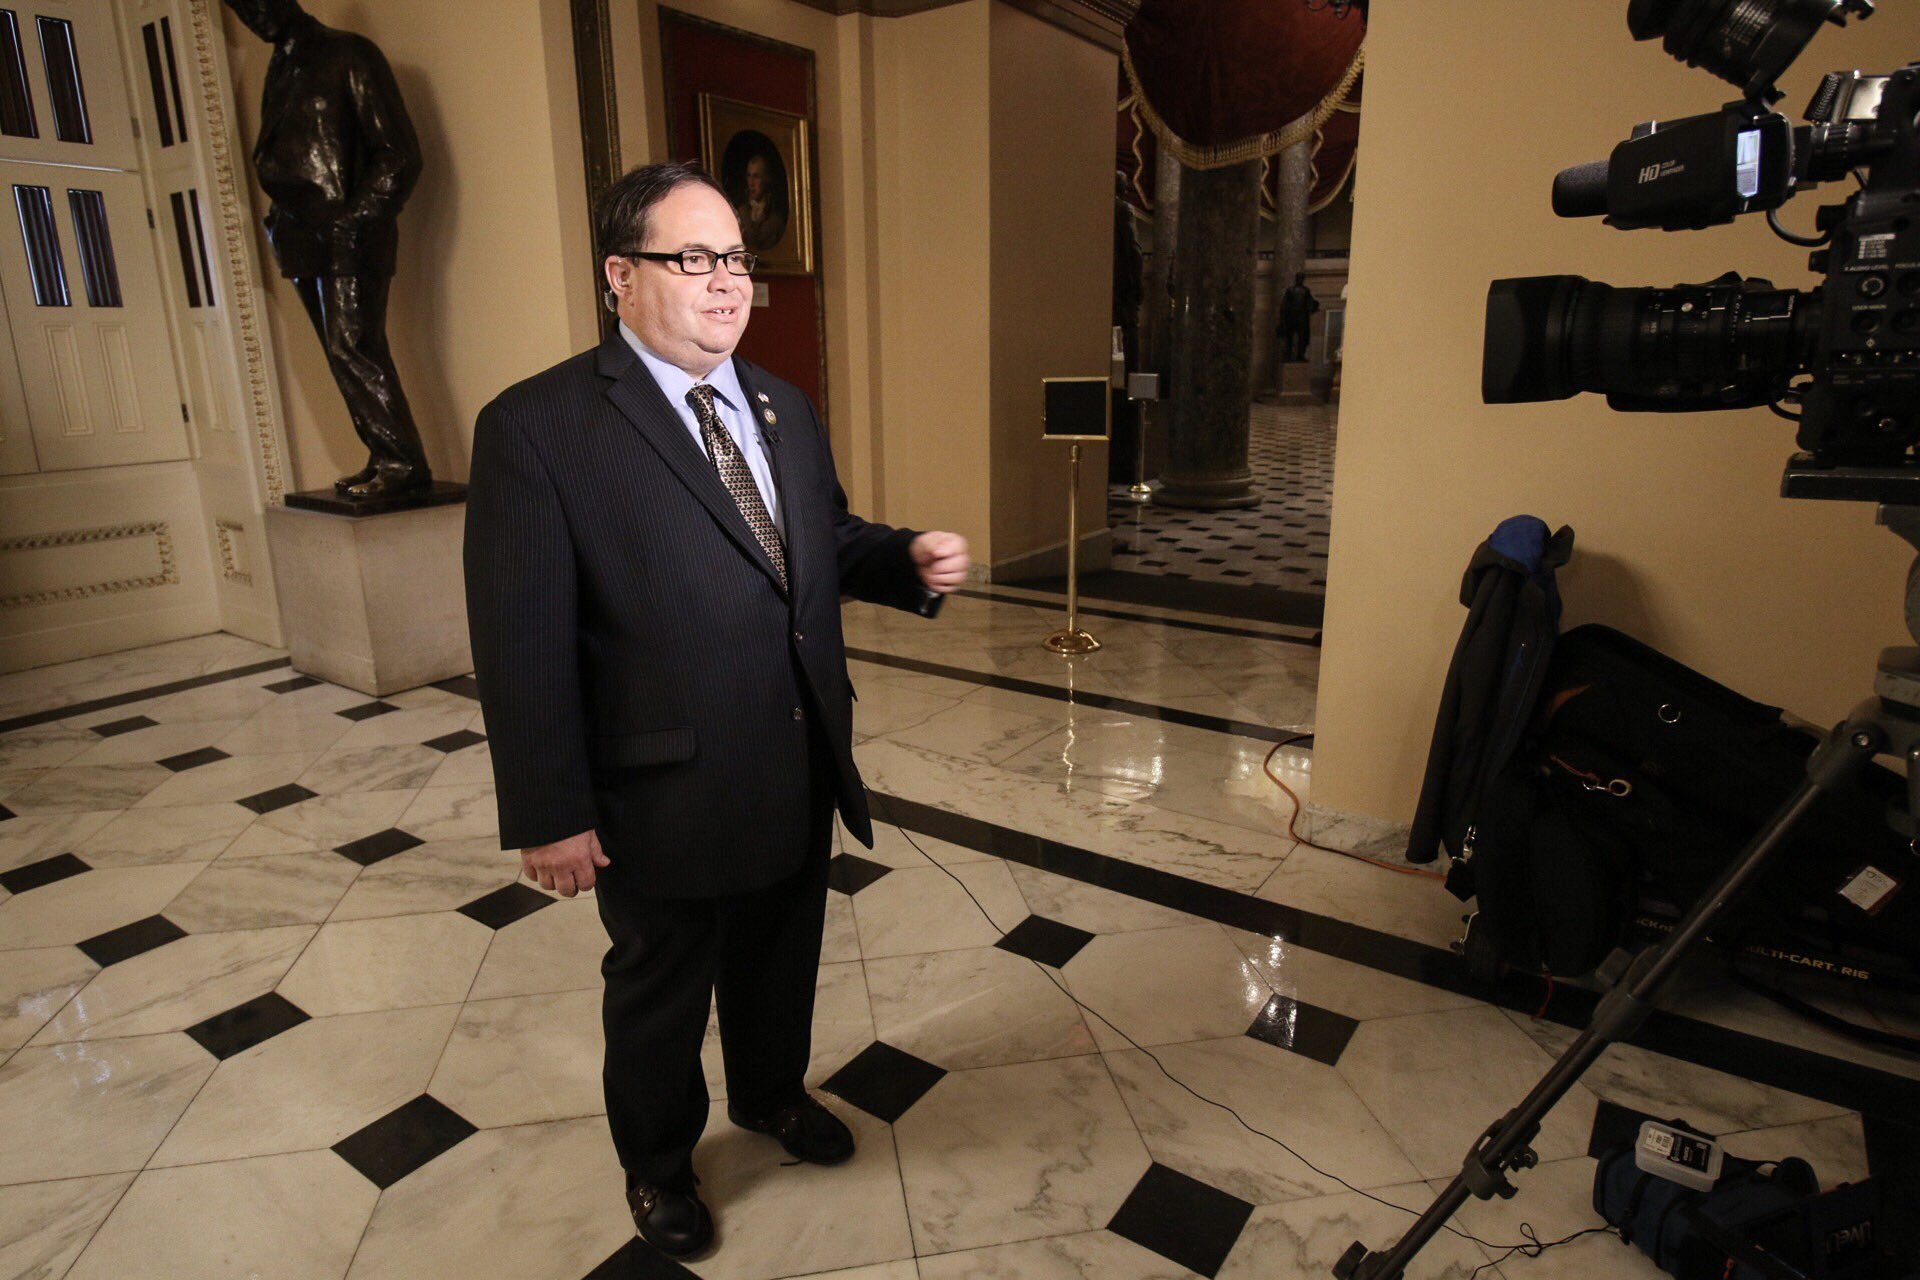 Blake Farenthold giving interview